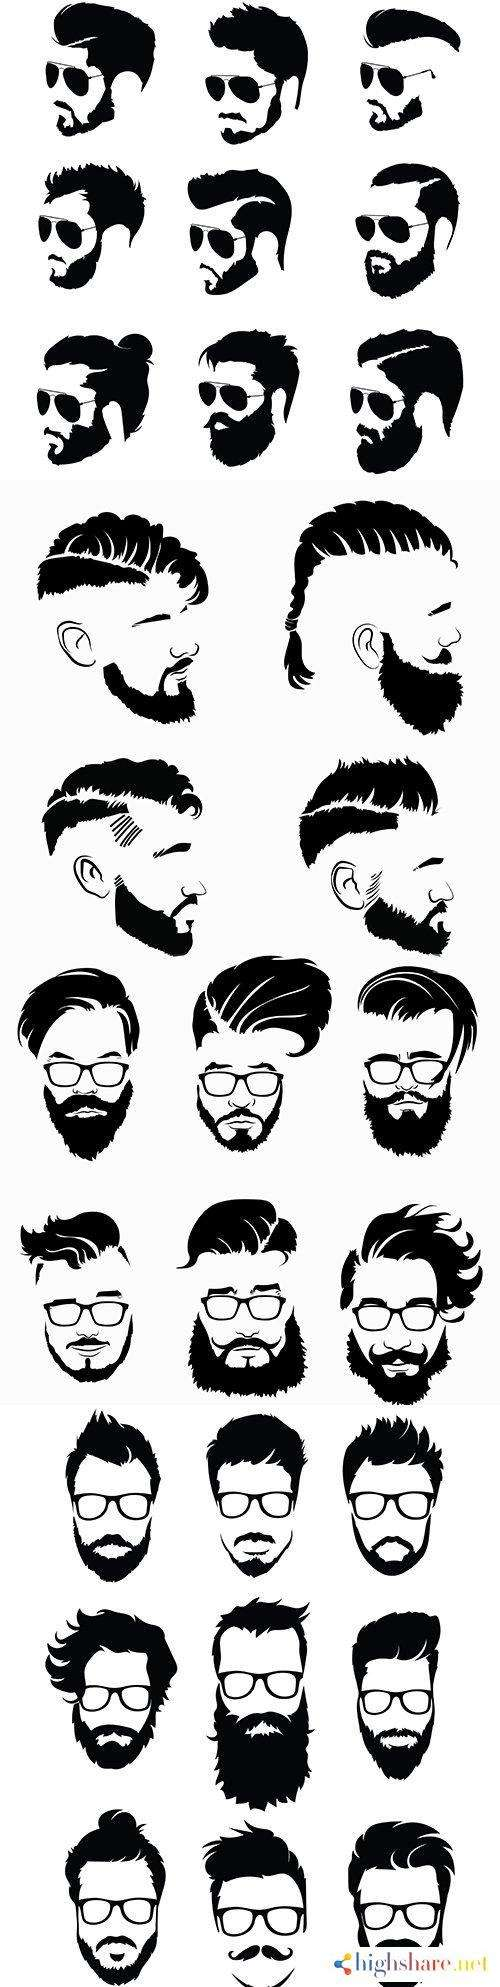 collection black hairstyle silhouettes and beards for men 5f4228e36e91f - Collection black hairstyle silhouettes and beards for men